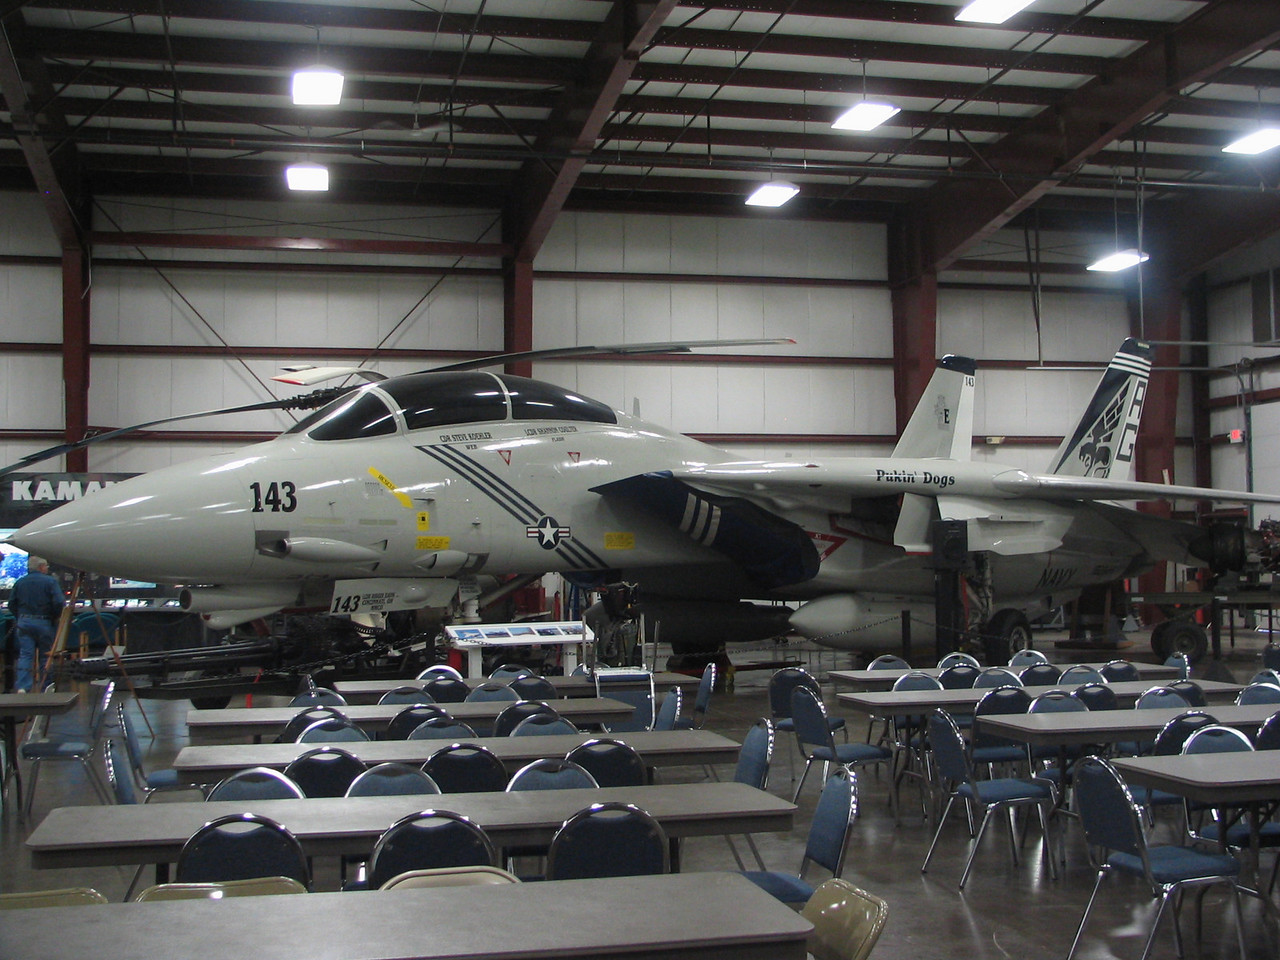 Grumman F-14B Tomcat. Top speed of 1545 mph with two GE turbofan engines producting 23,100lbs of thrust.